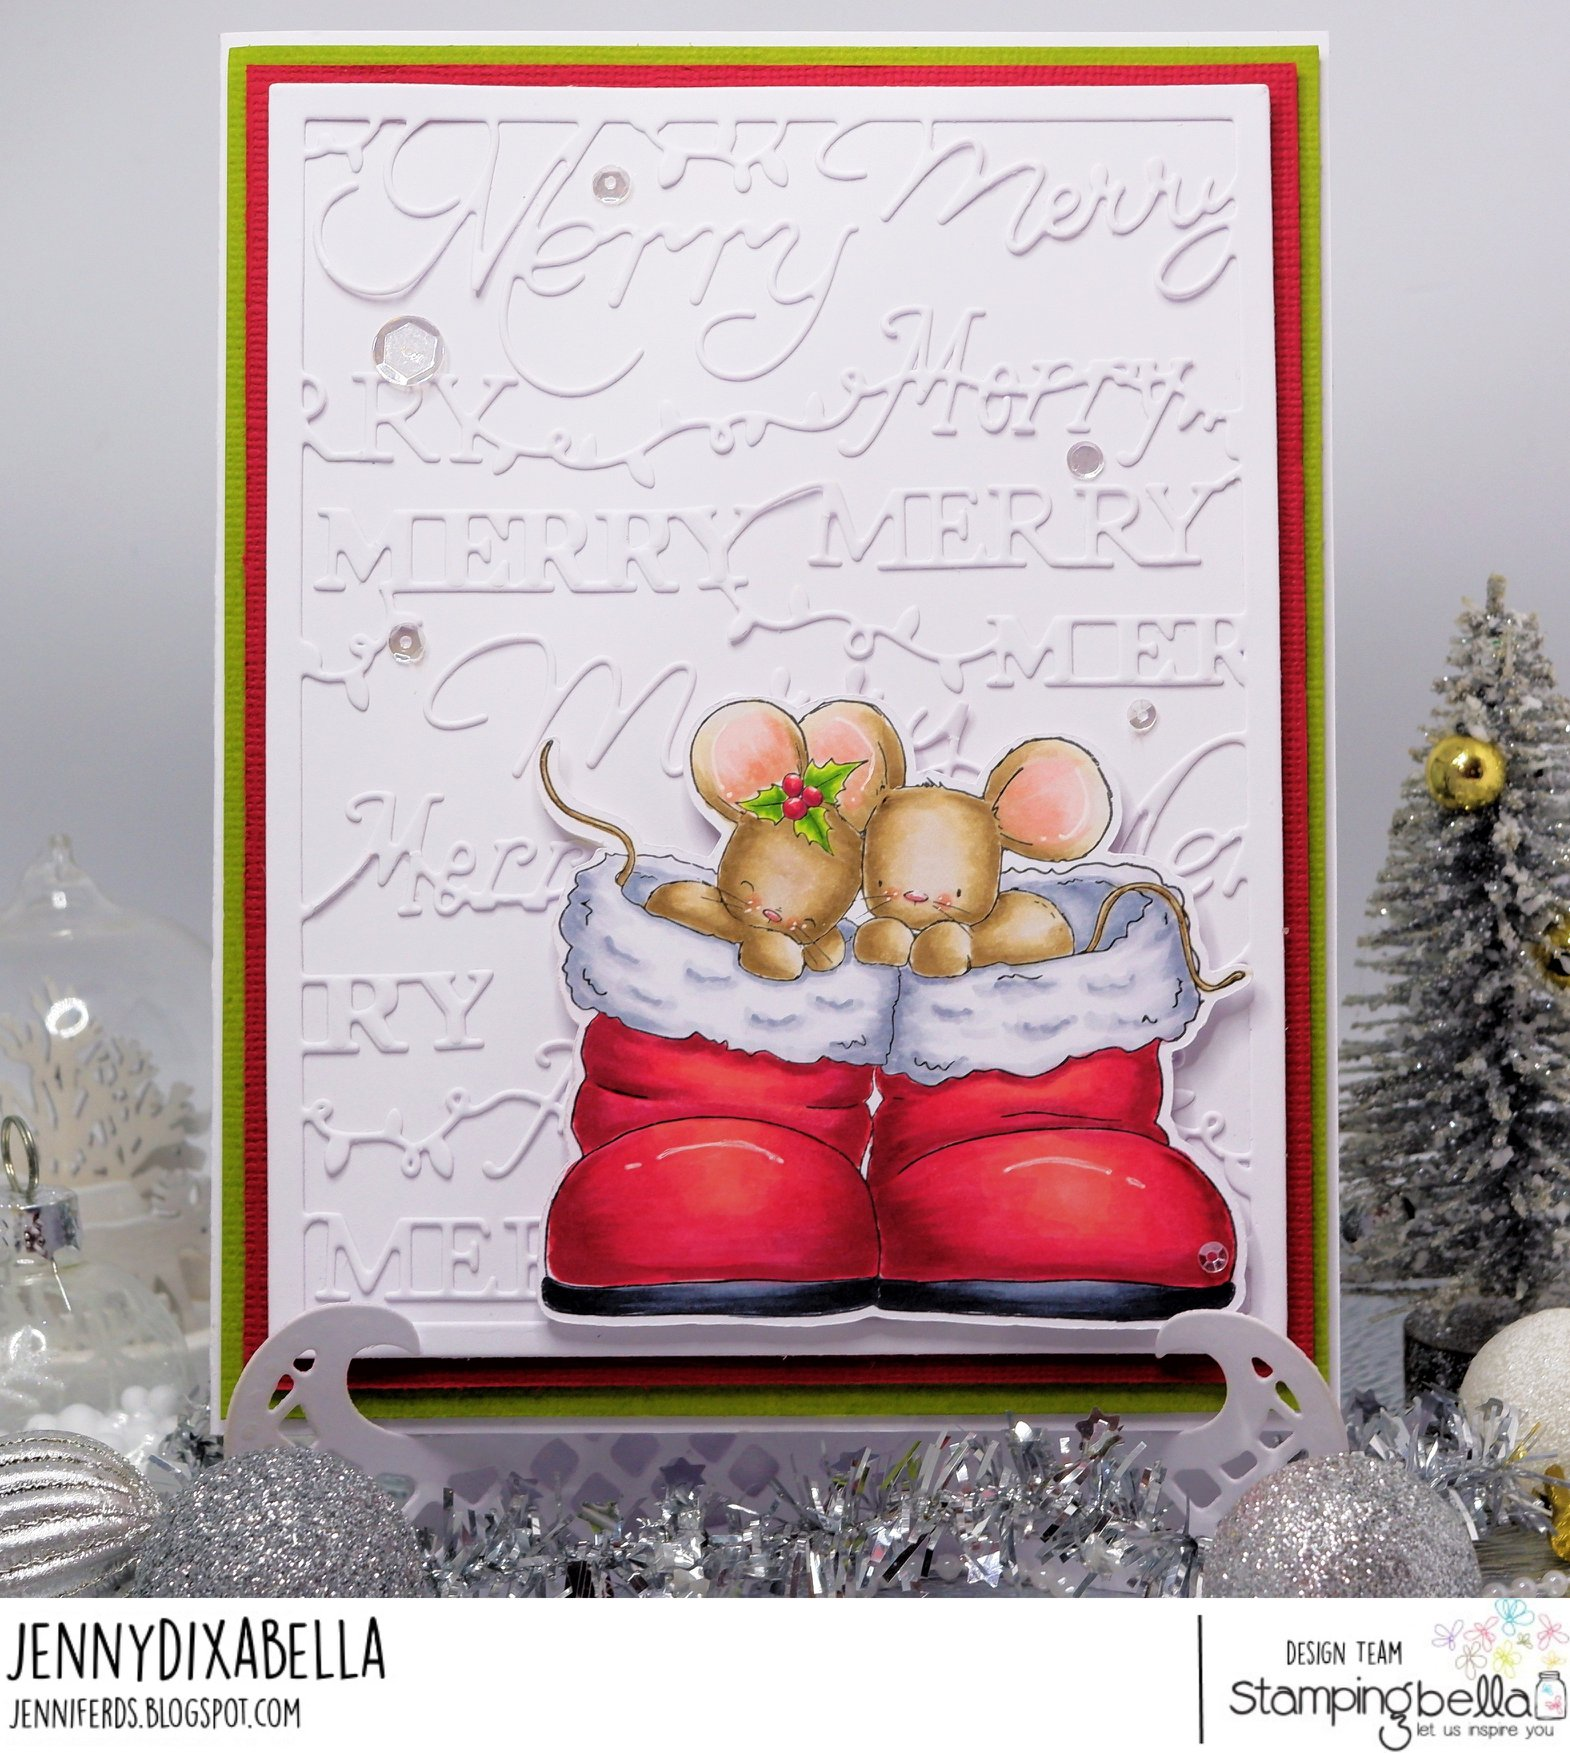 www.stampingbella.com: rubber stamp used: MICE IN BOOTS card by Jenny Dix